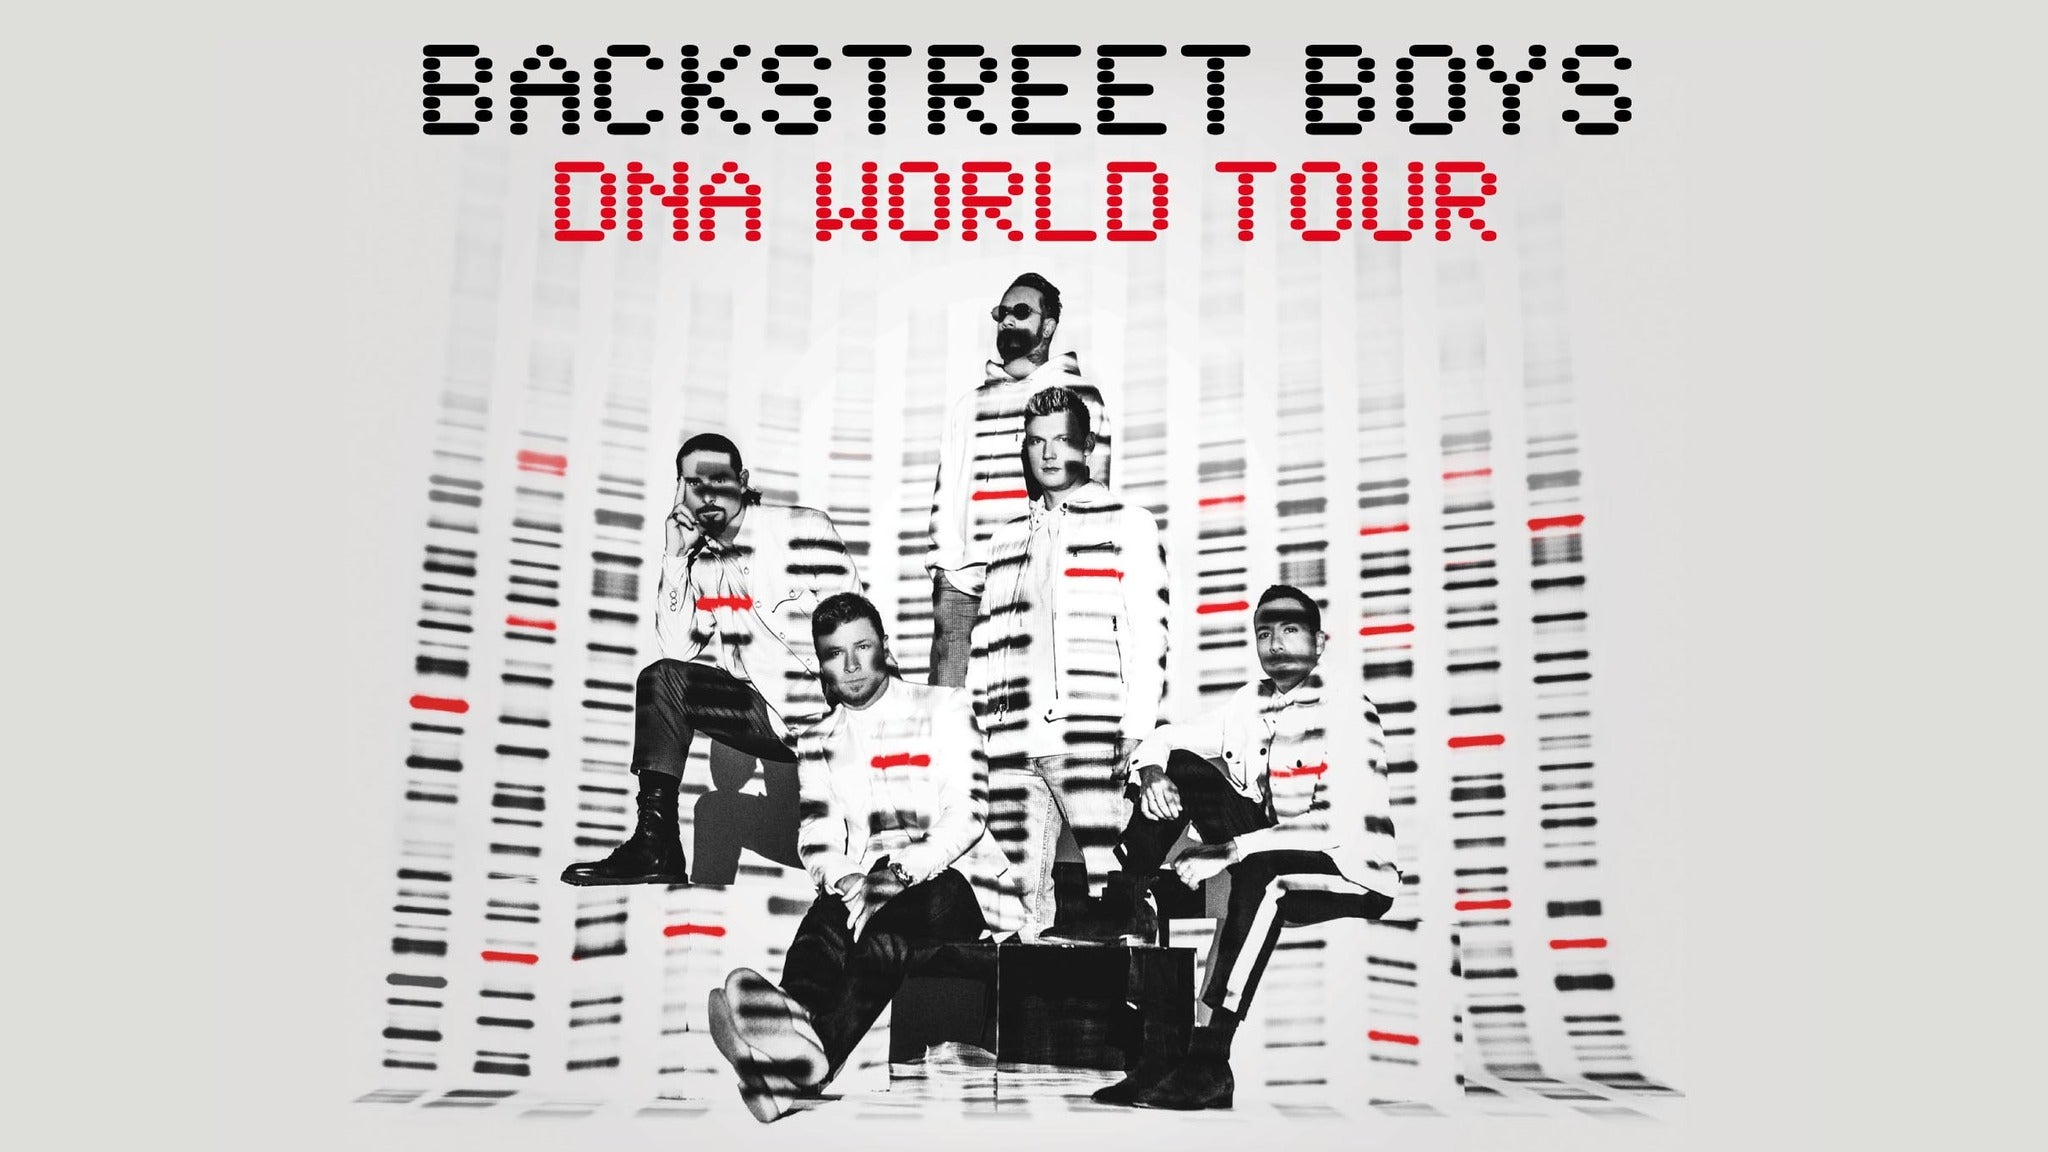 Backstreet Boys: DNA World Tour at Chesapeake Energy Arena